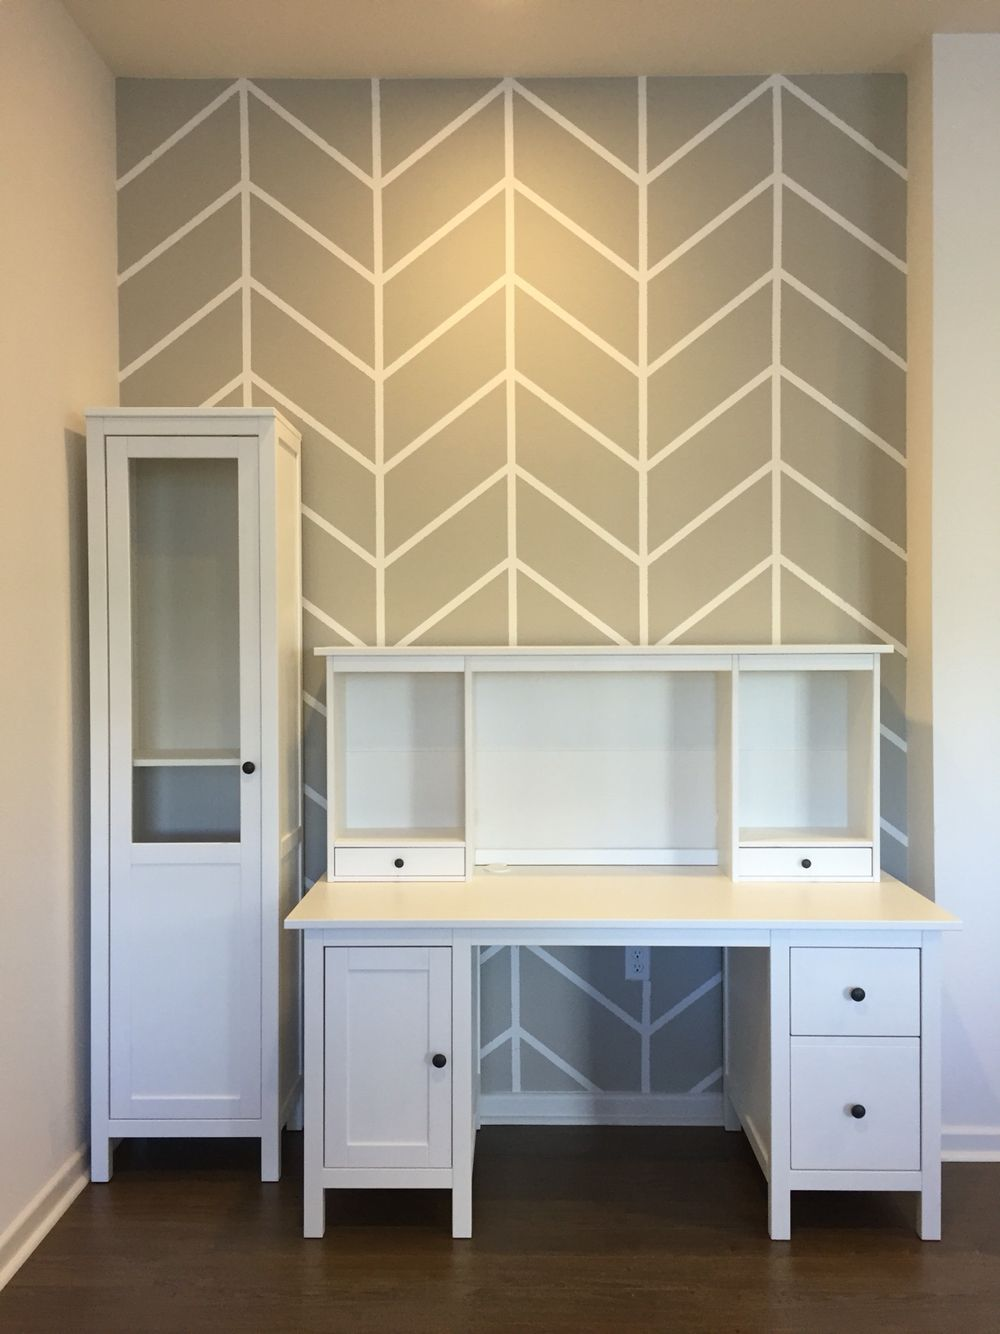 DIY herringbone pattern accent wall with paint and